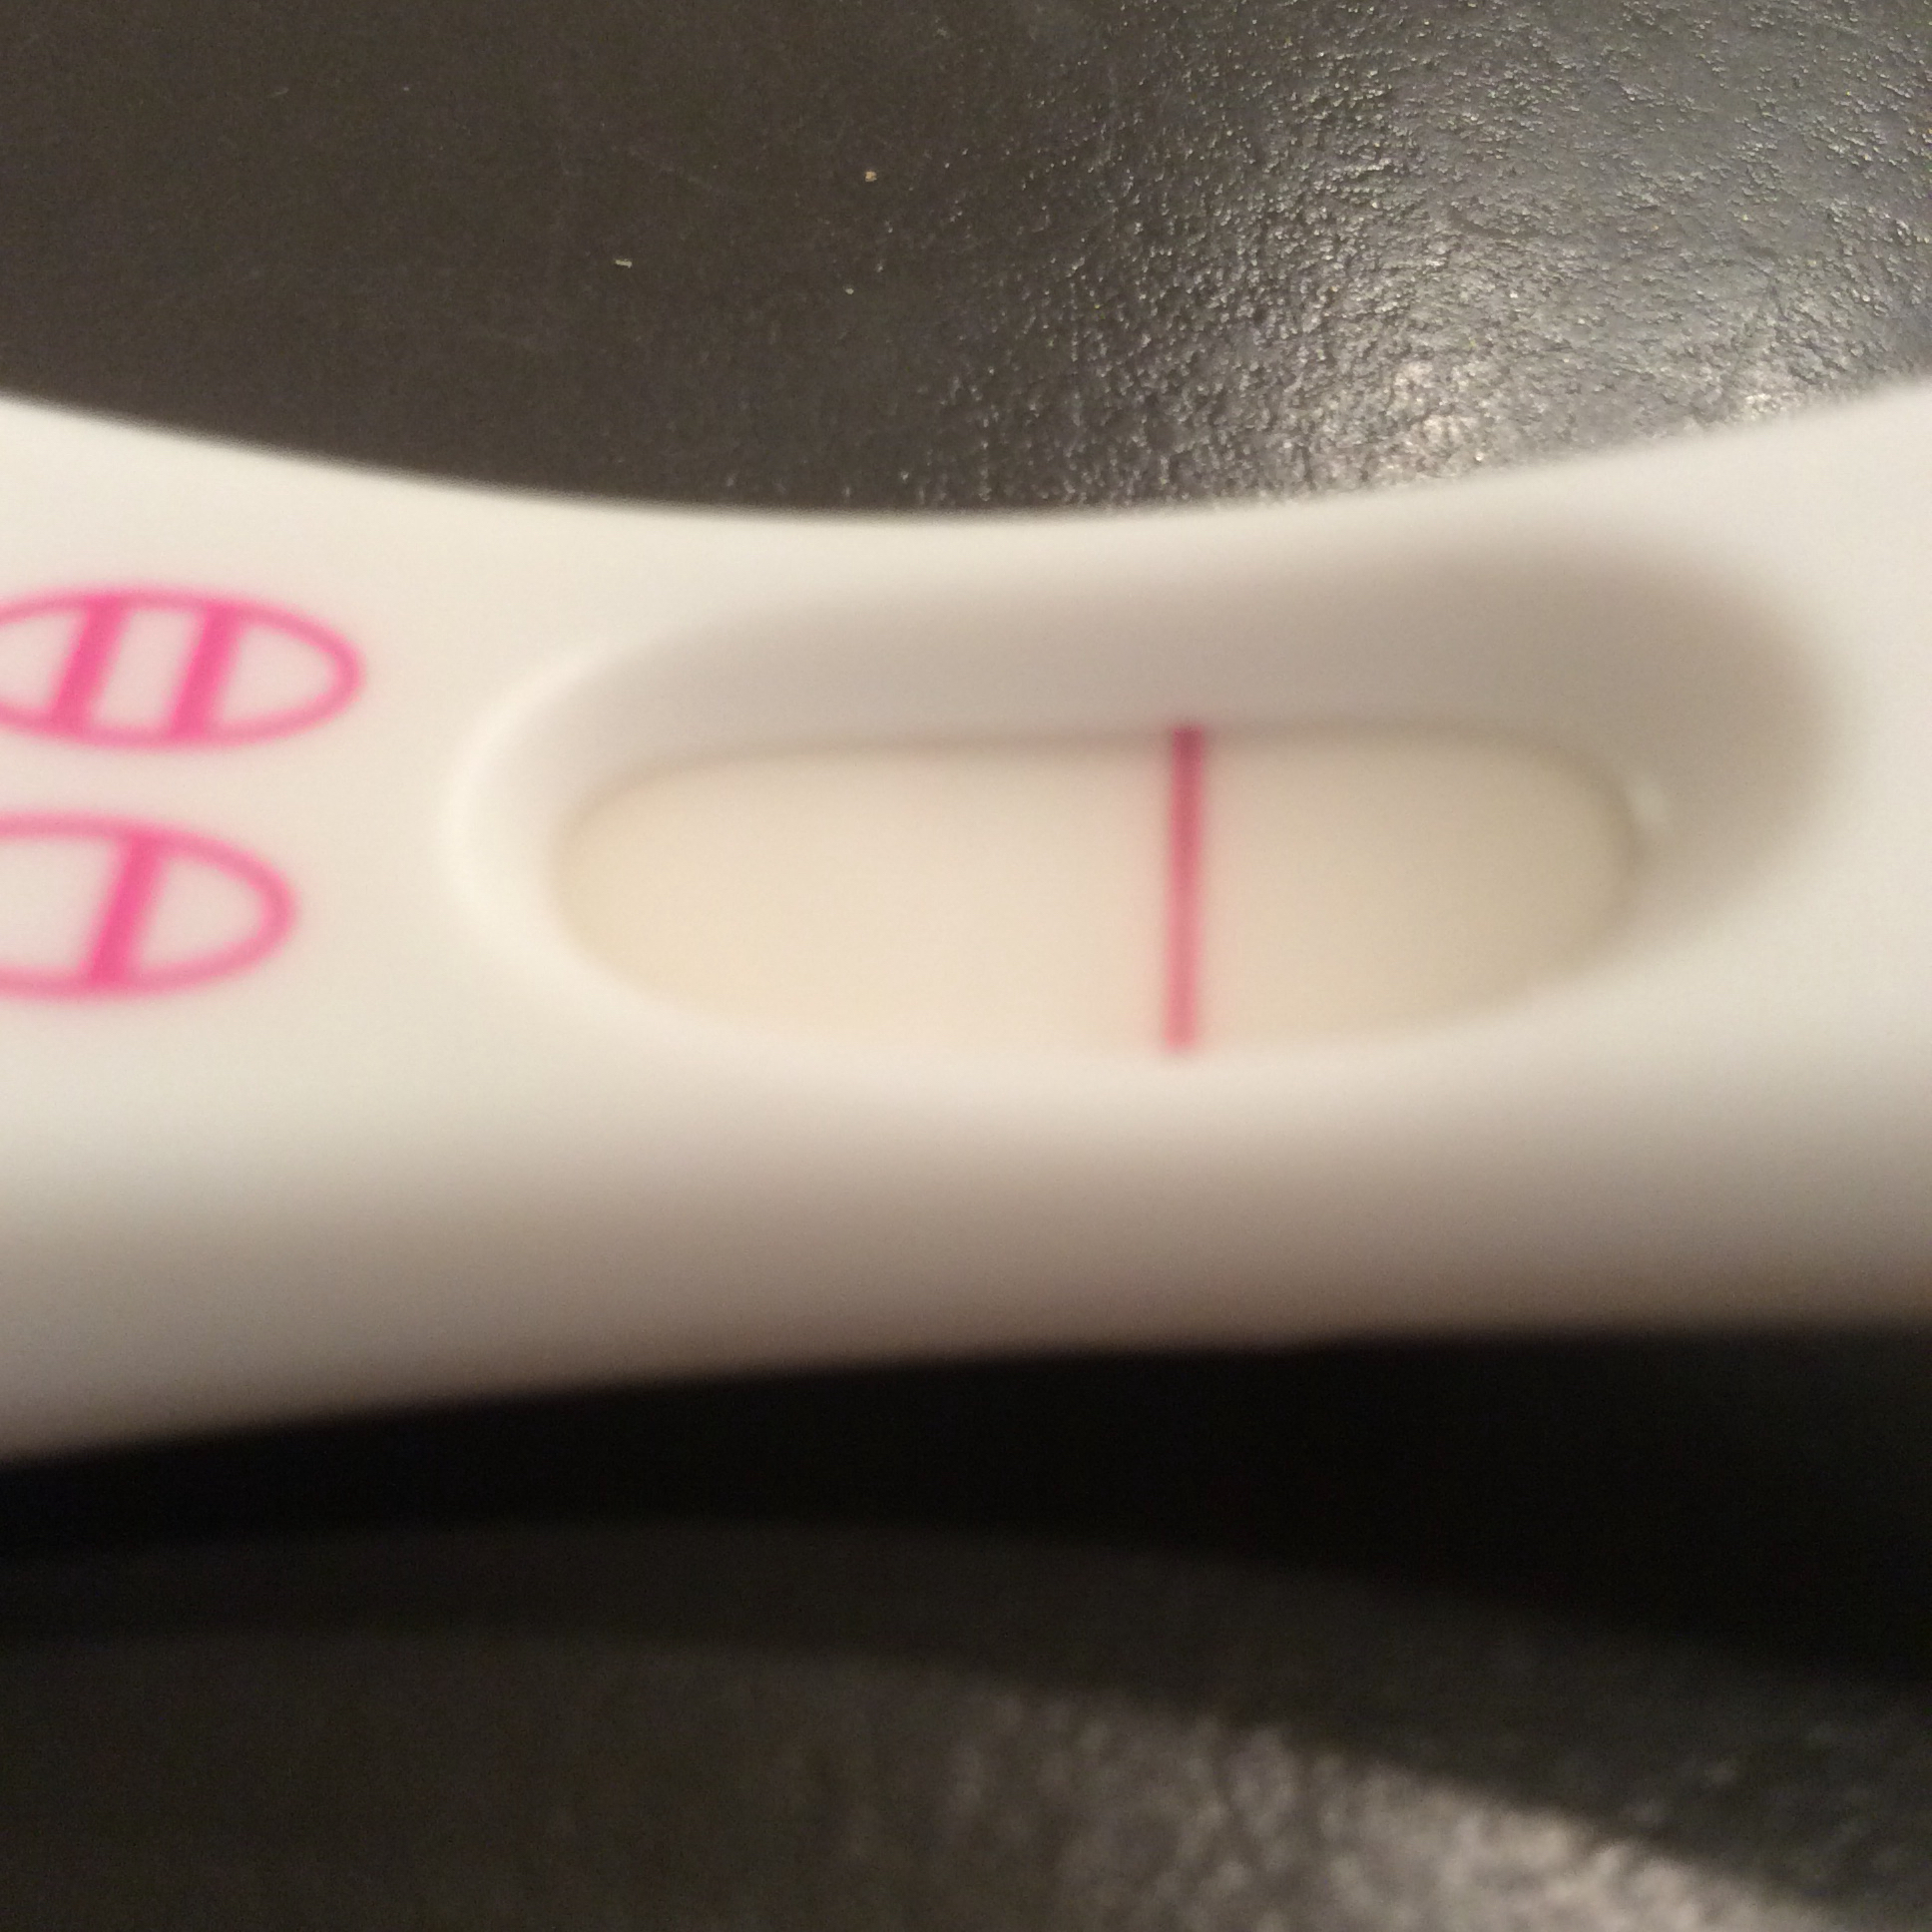 My Journal By Angela: 9 Days Post Trigger (7 DPO)